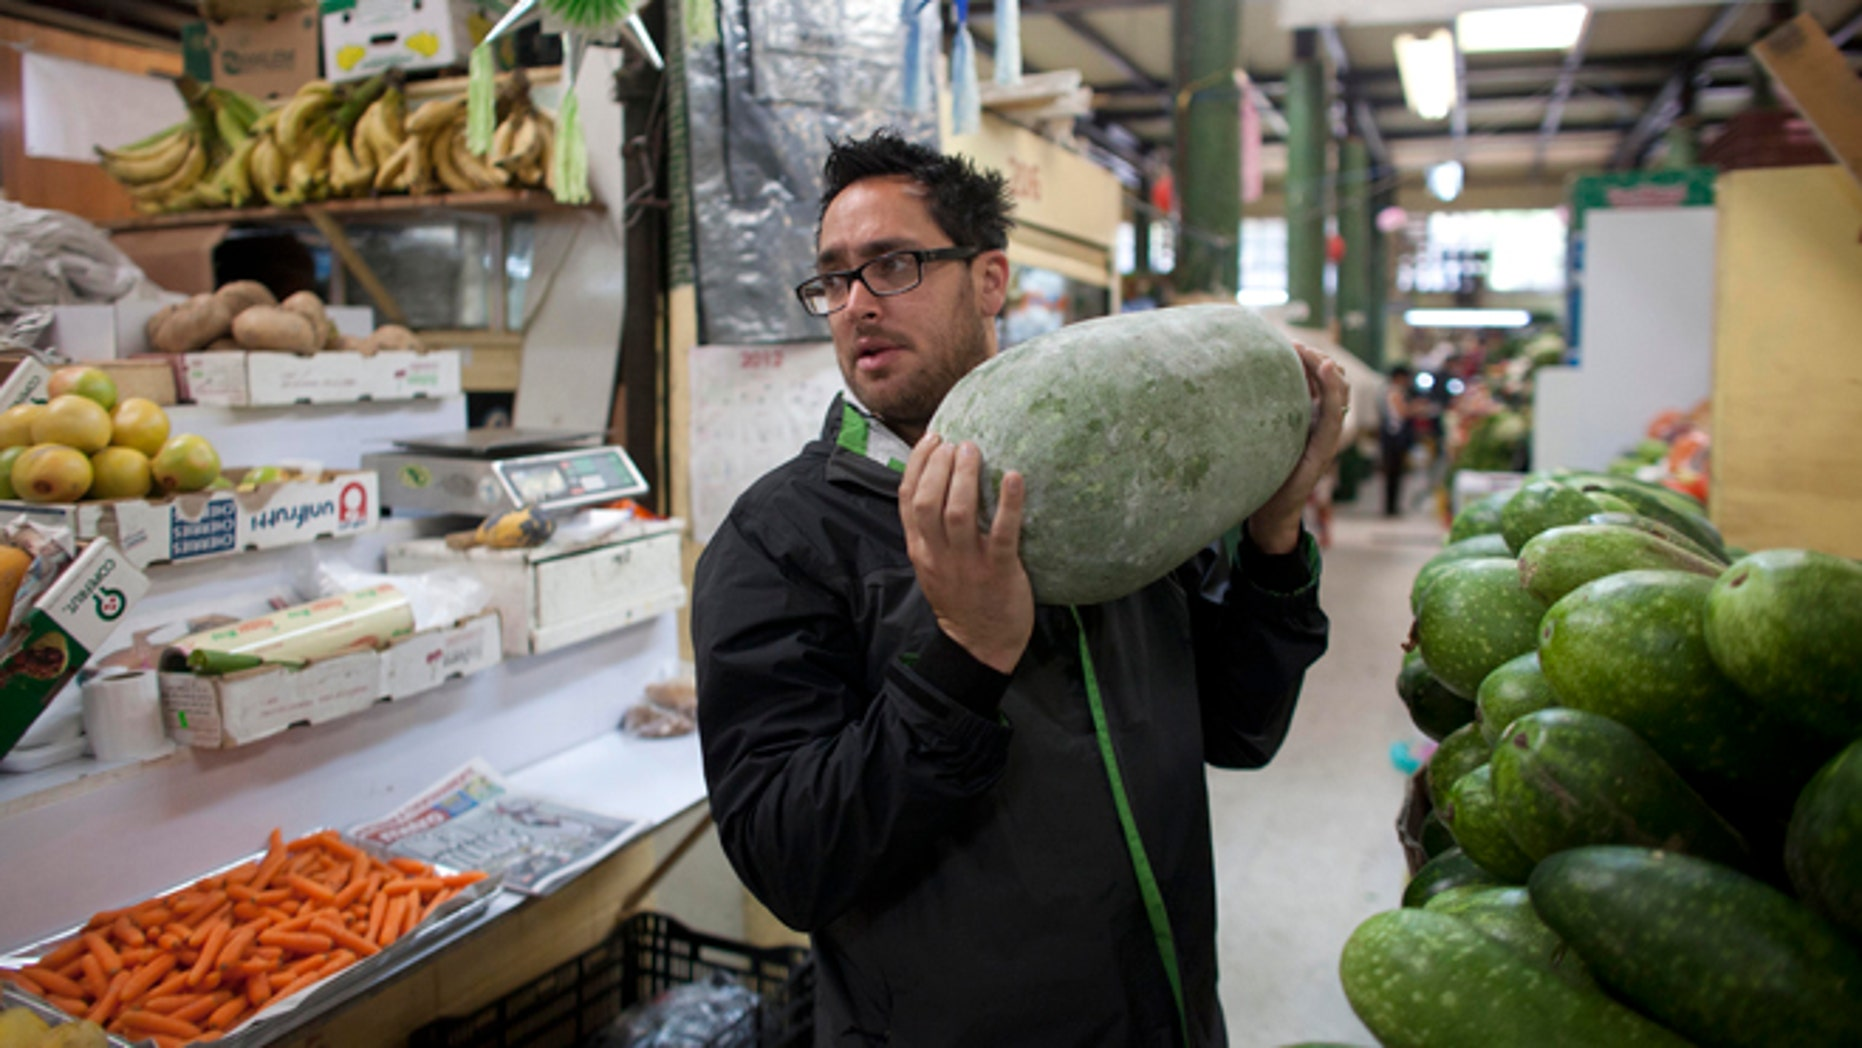 July 27, 2012: U.S. Chef Christopher Kostow at Mercado San Juan Pugibet, the most gourmet market in Mexico City.